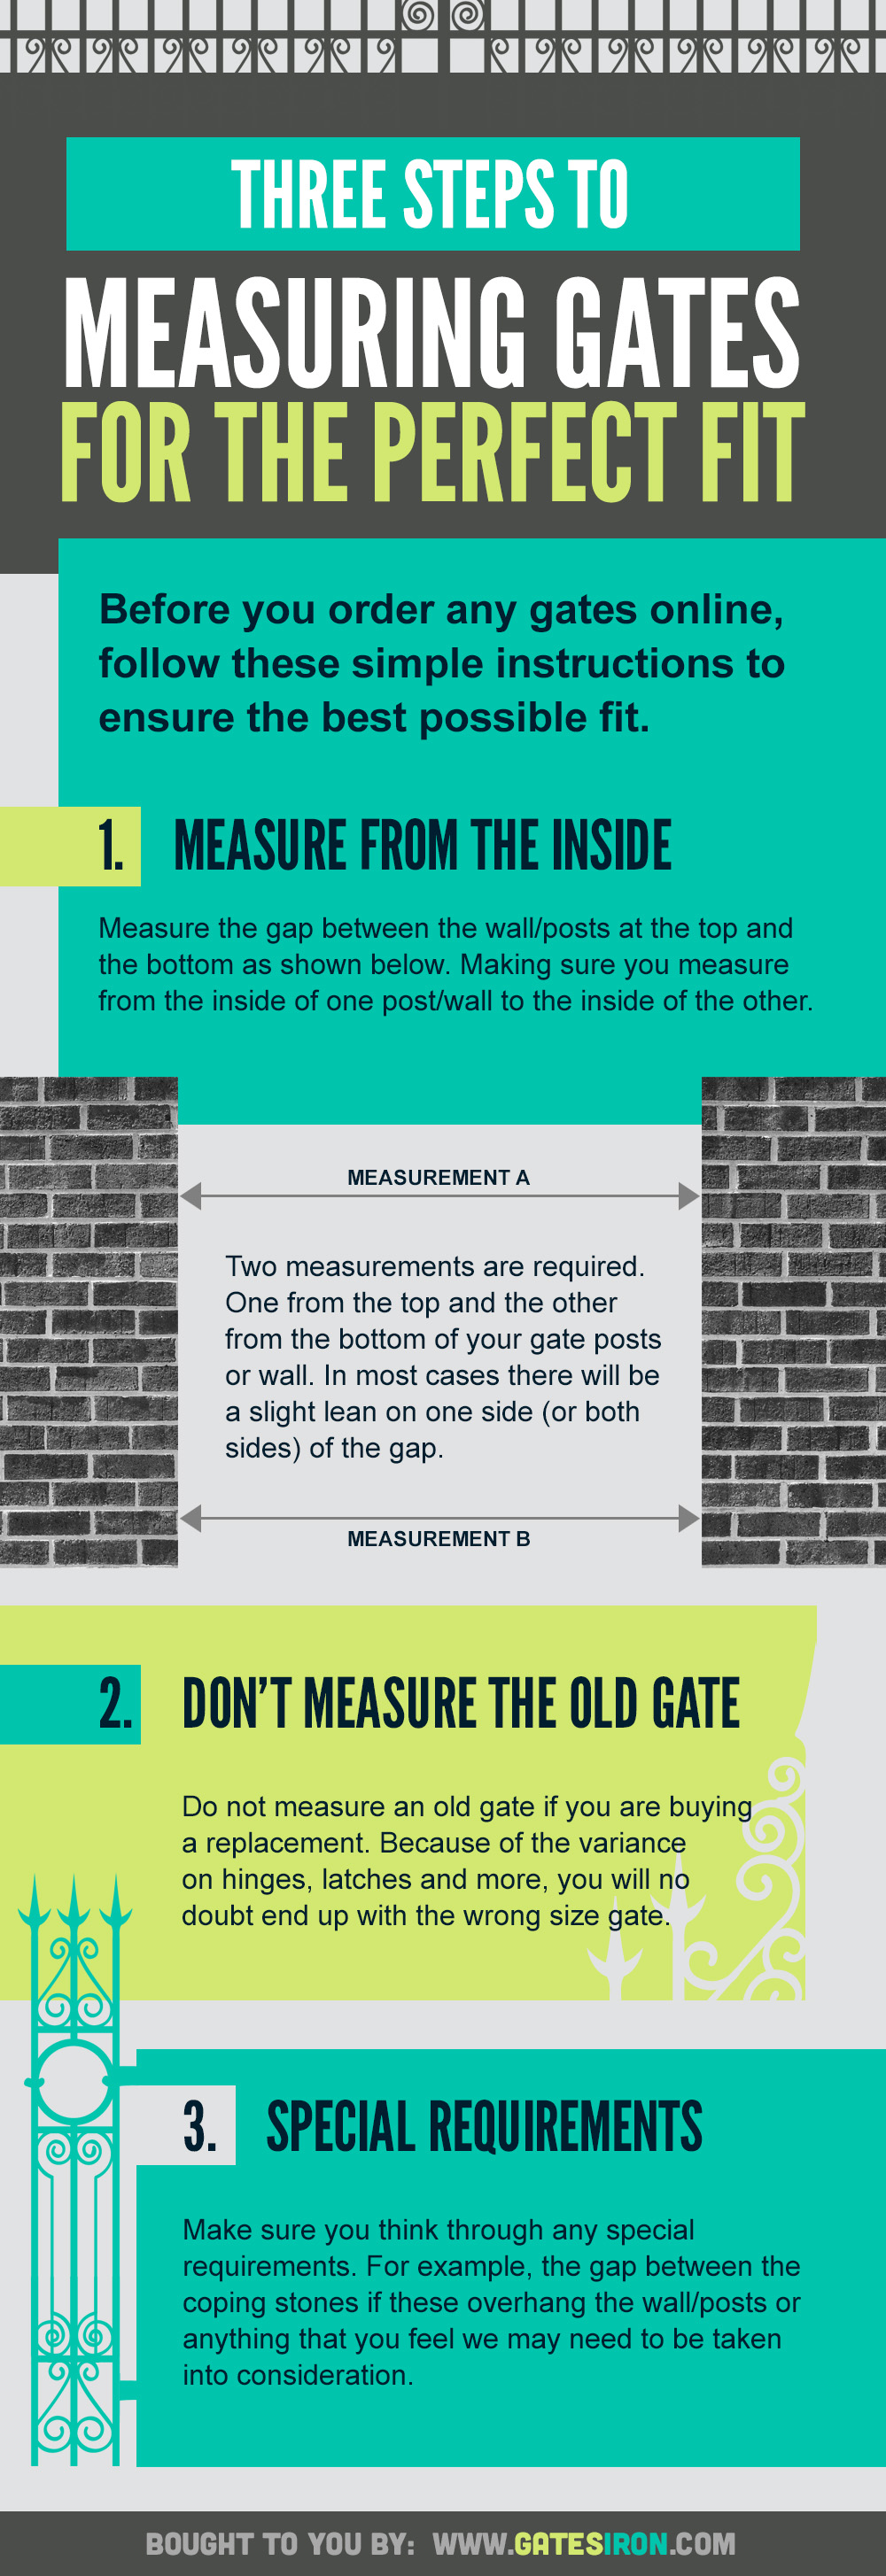 four-steps-to-measuring-gates-352x1024